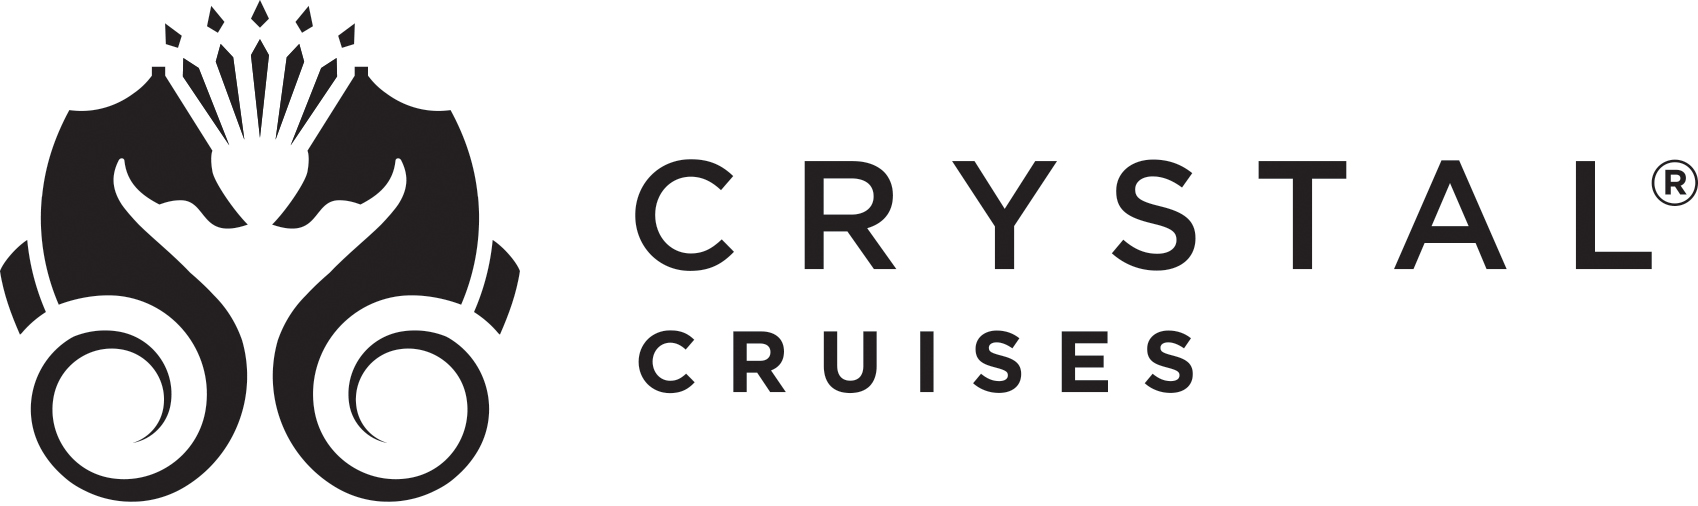 Crystal_Cruises_2016_%20Logo_(Horizontal)%20(2)